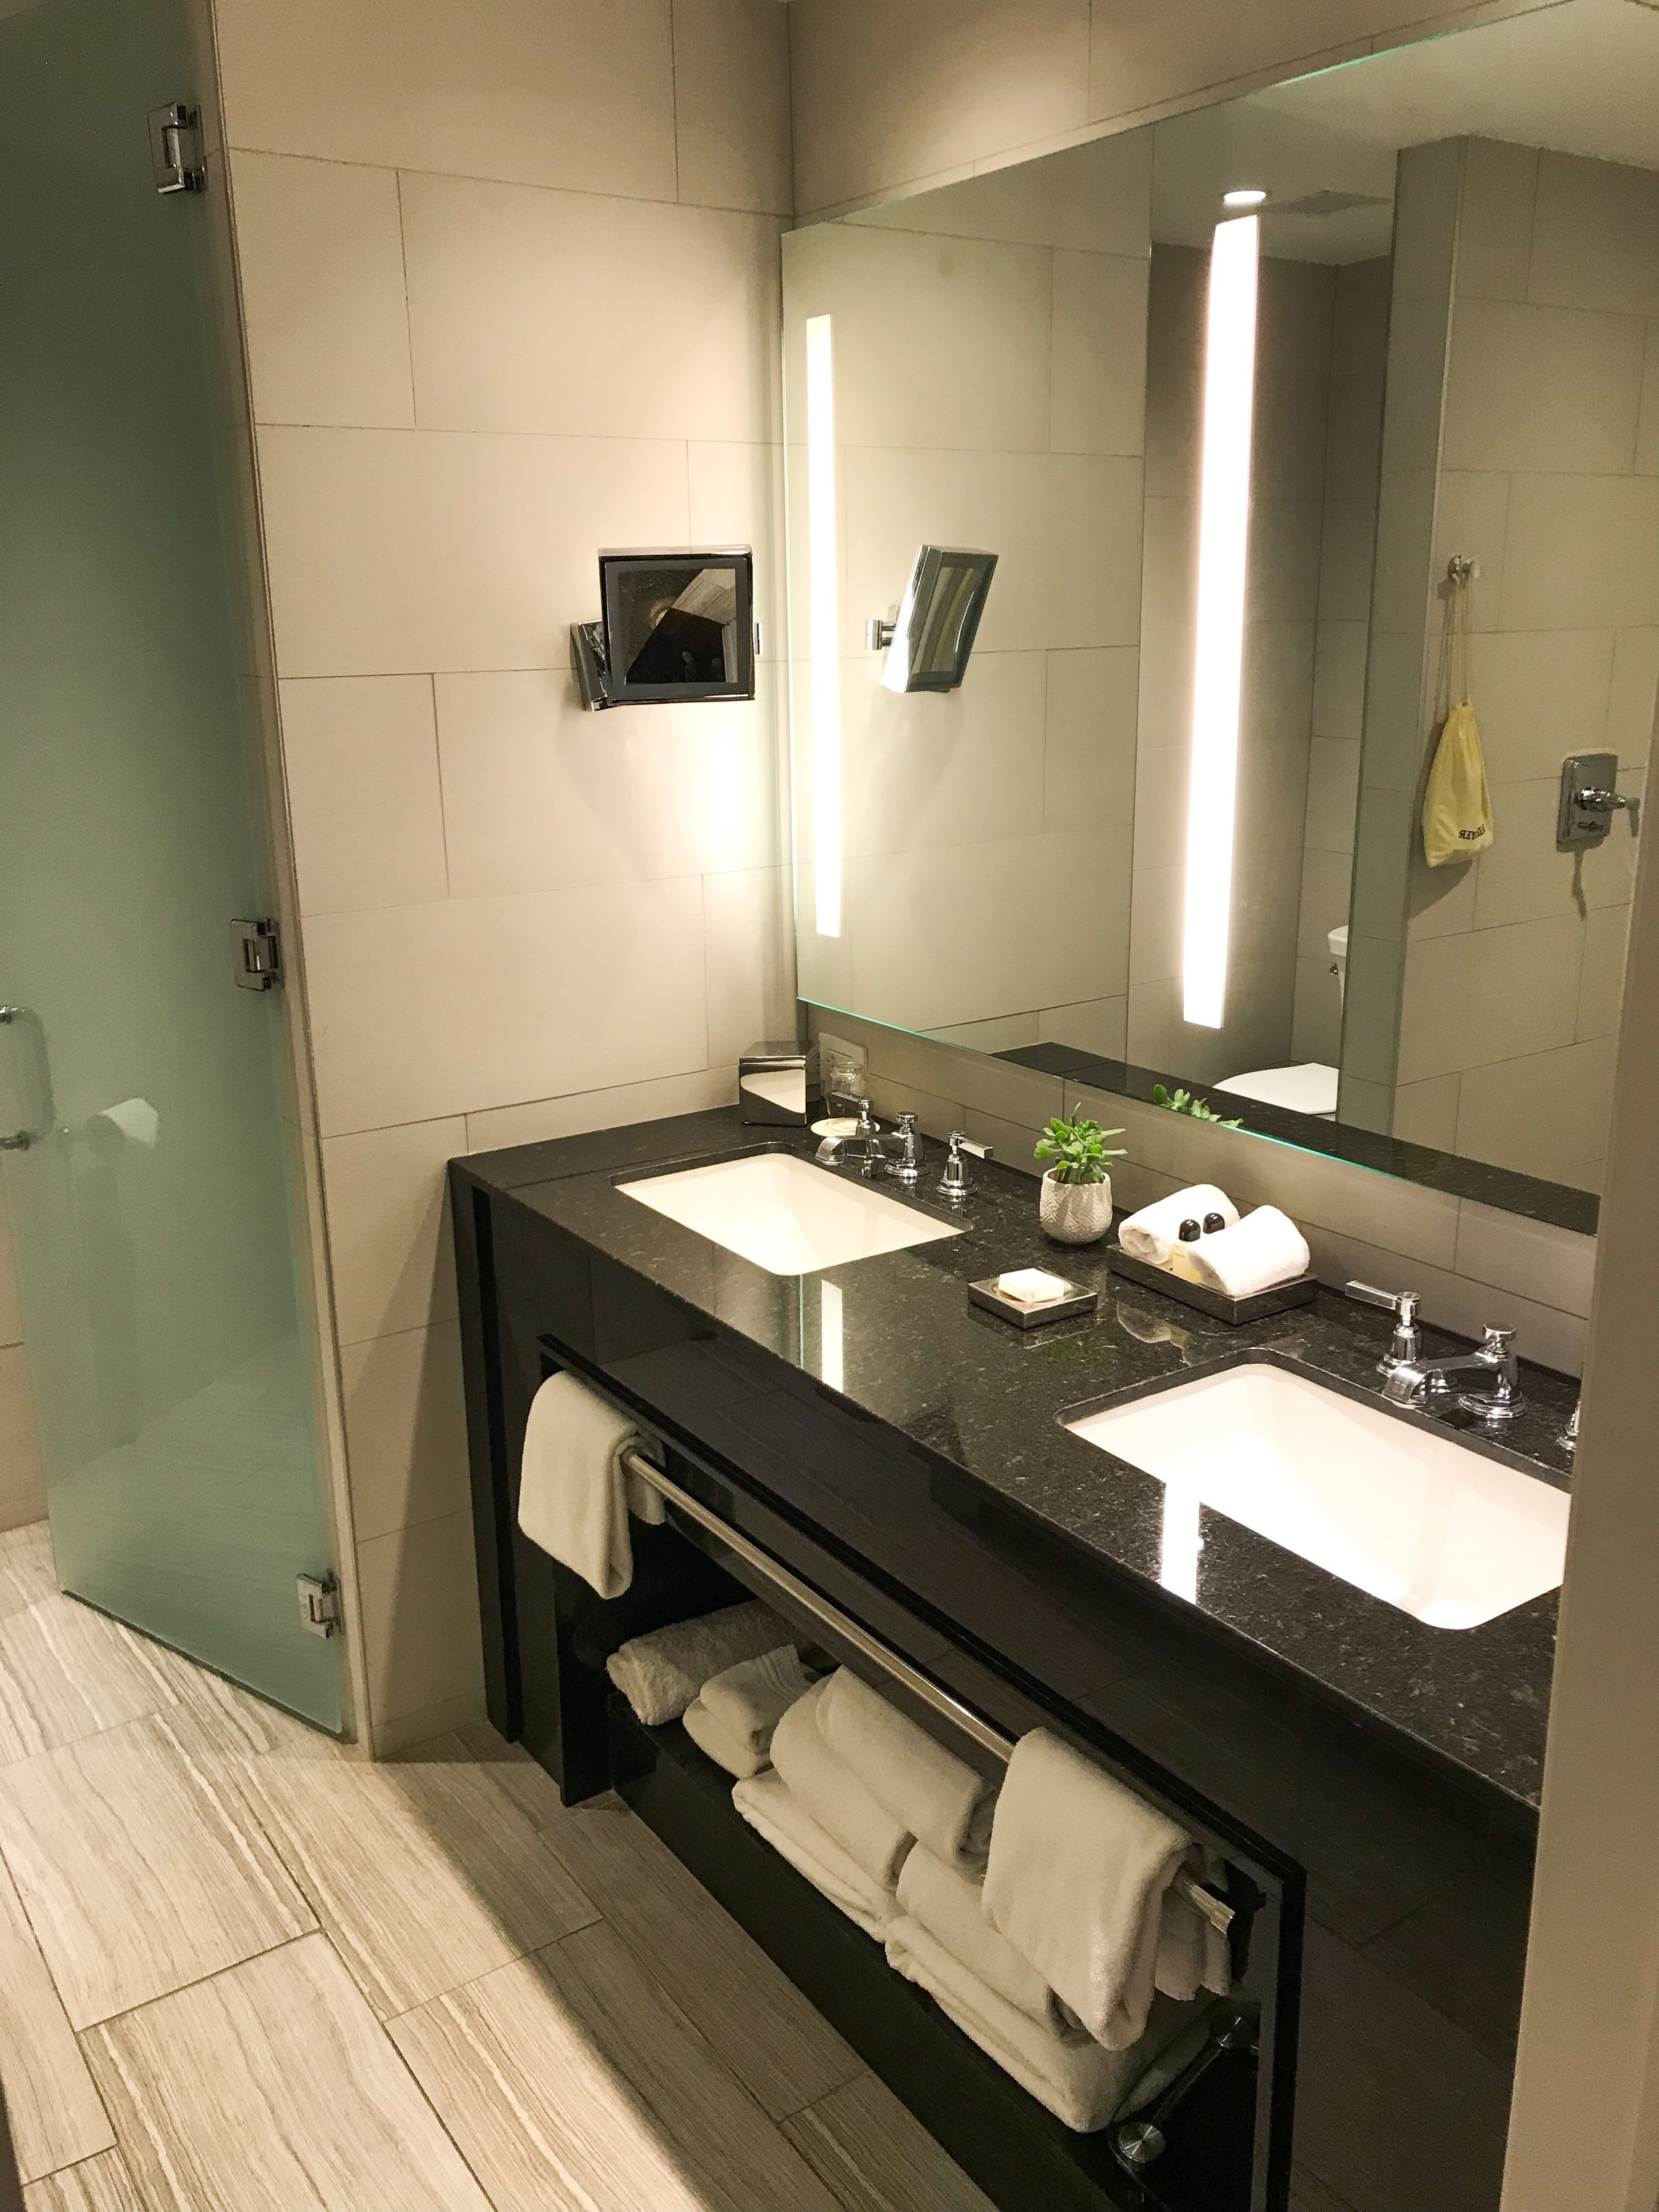 I especially liked the fact there were two sinks and plenty of counter space.